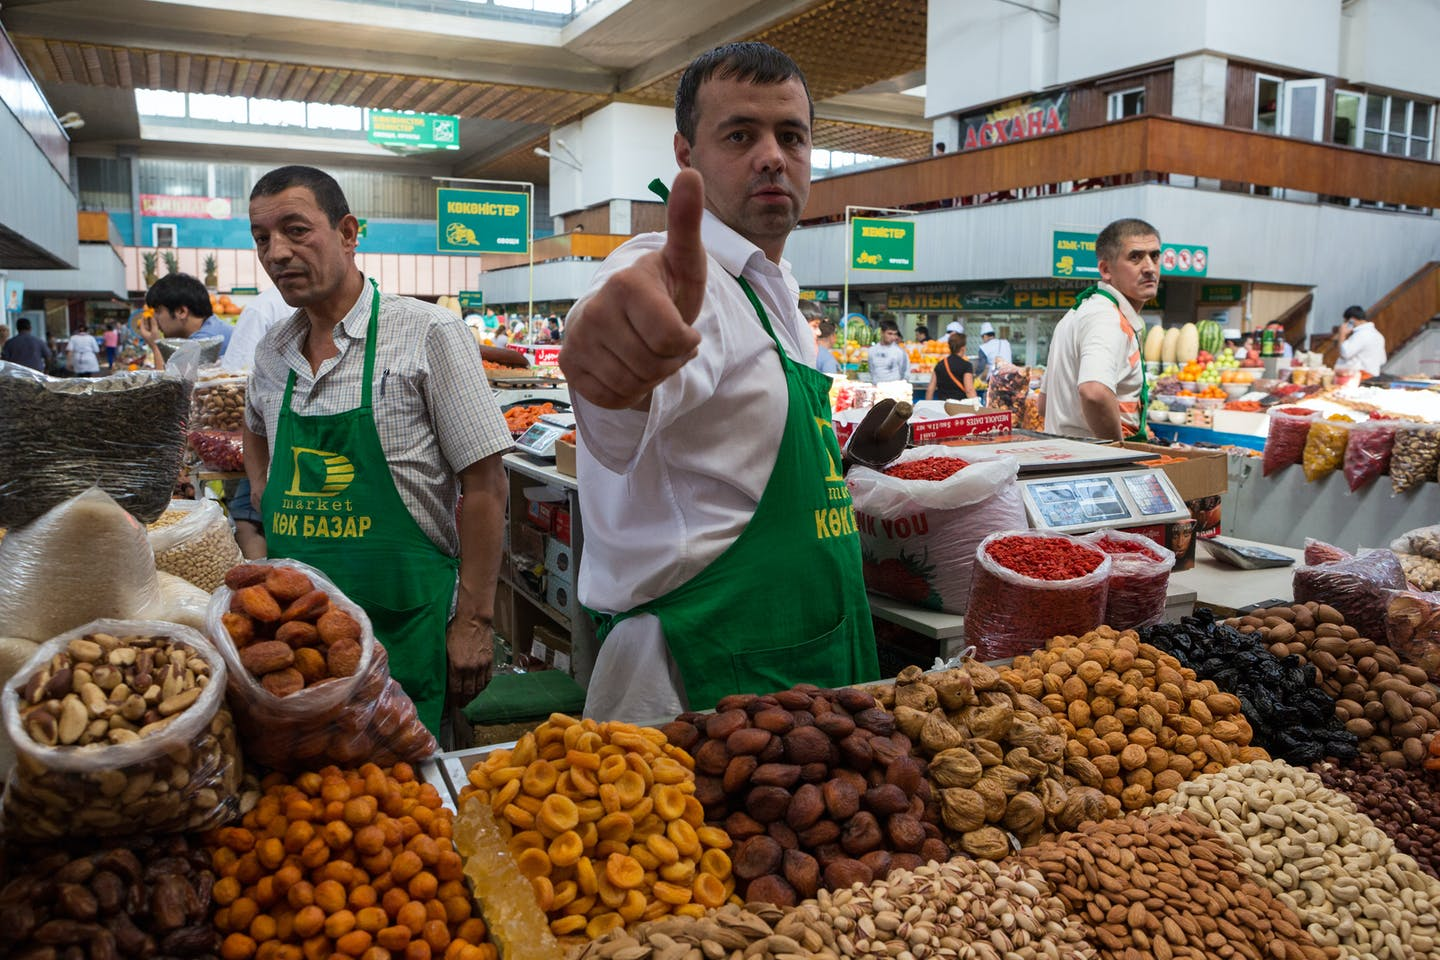 Dried fruits and delicacies sellers in Almaty, Kazakhstan